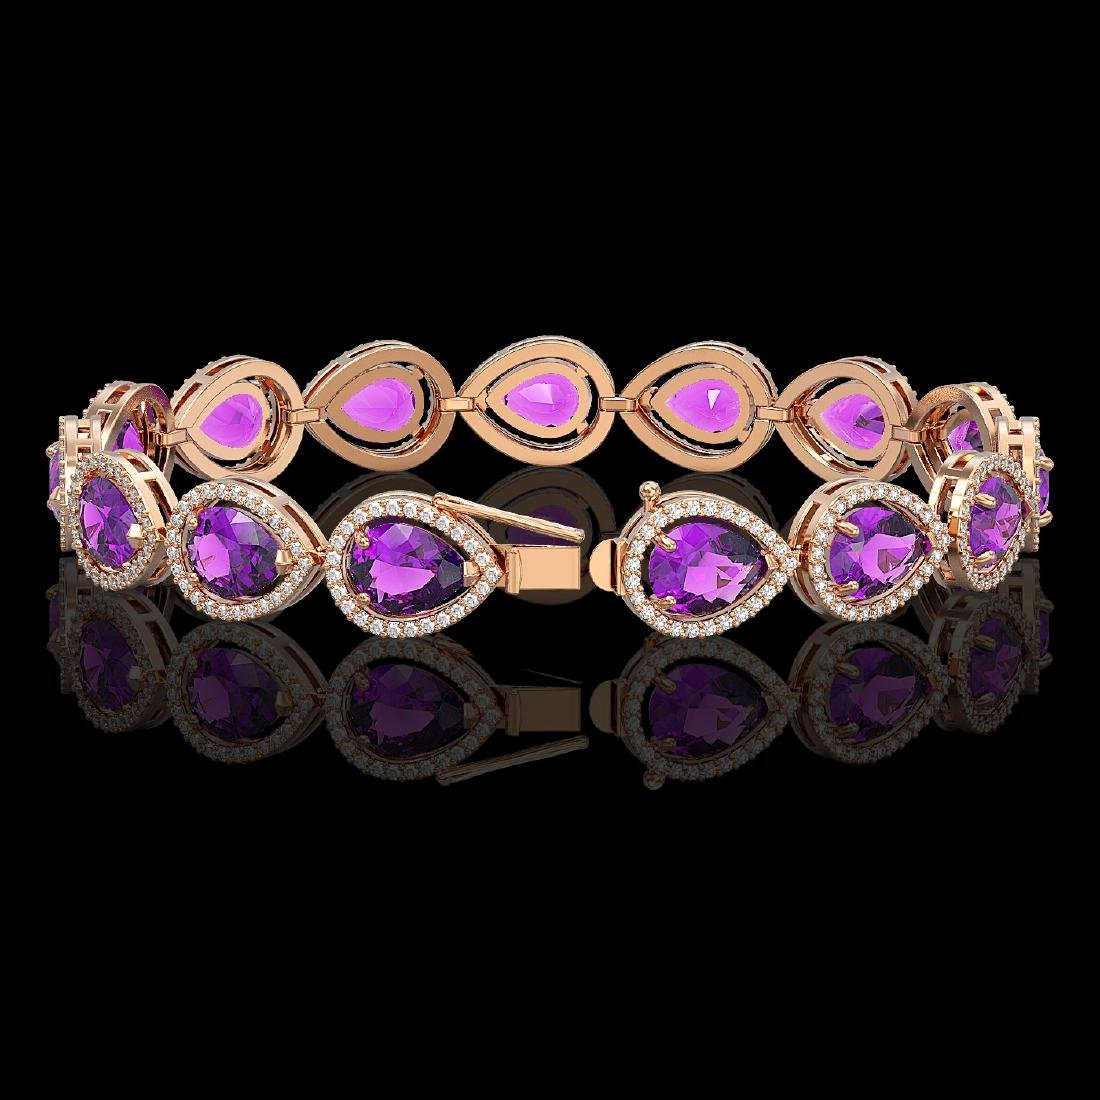 20.3 CTW Amethyst & Diamond Halo Bracelet 10K Rose Gold - 2